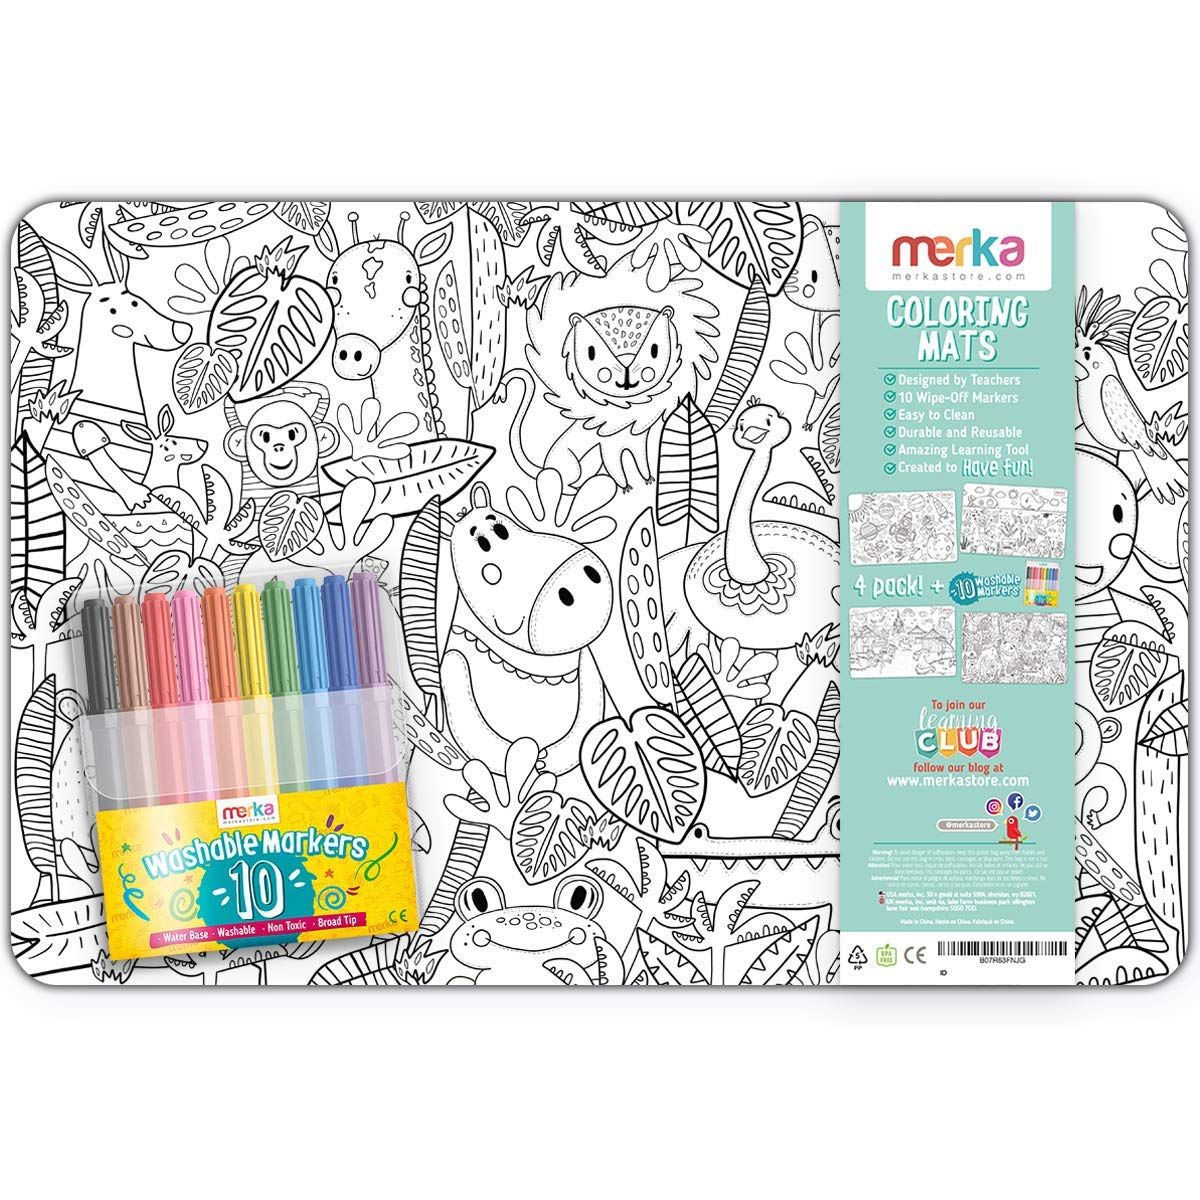 merka Coloring Placemats for Kids - Places Set - Bundle of 4 Mats with 10 Markers - Improve Motor Skills and Boosts Creativity - Erasable and Reusable - Develops Creativity and Hand Muscles